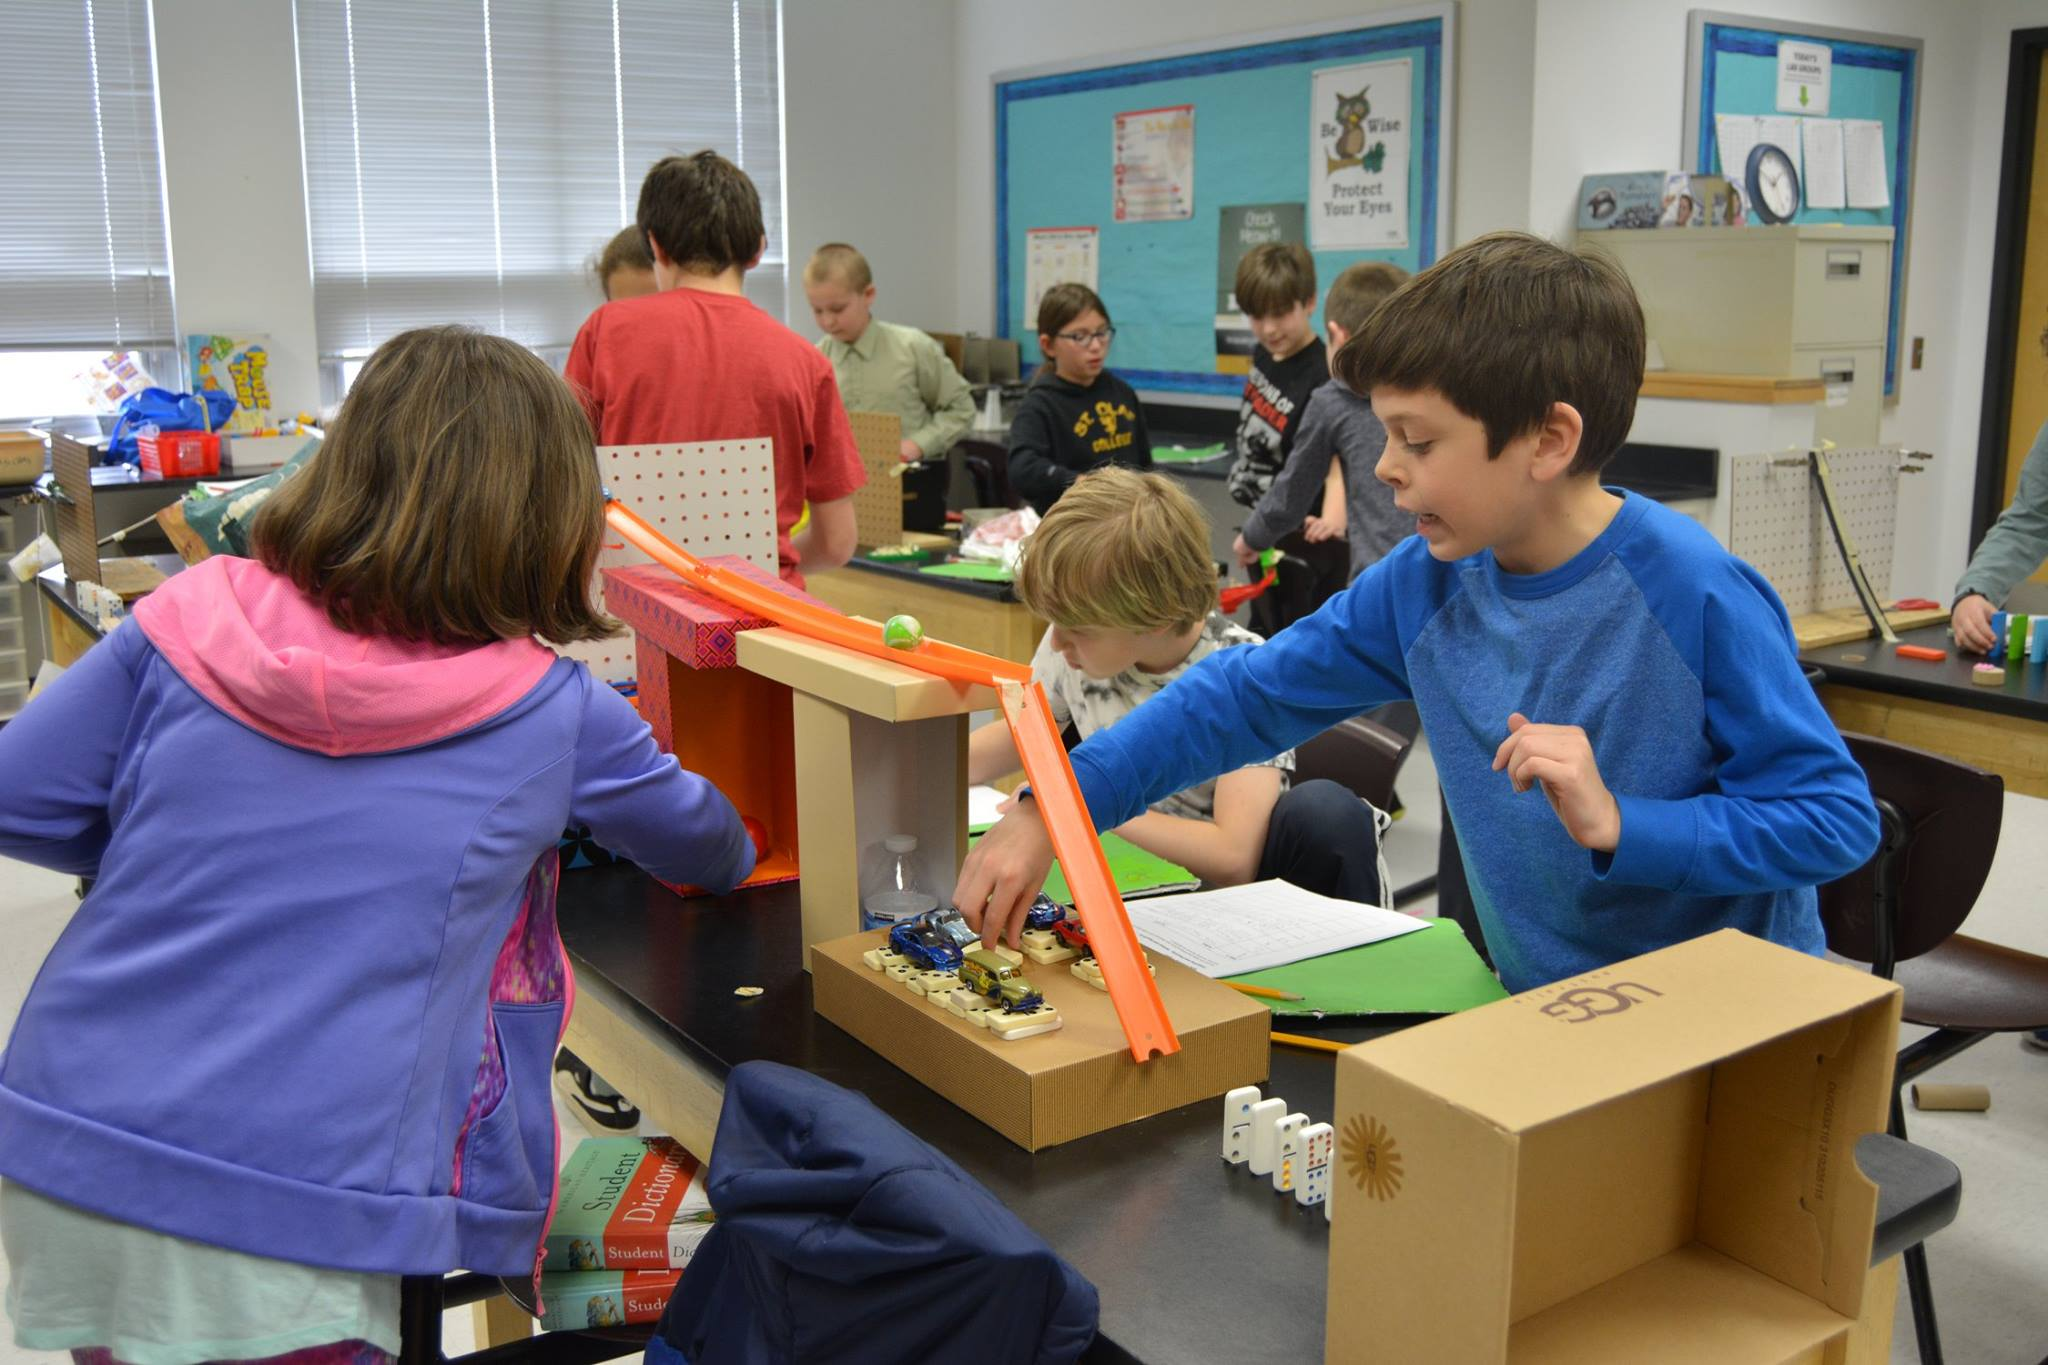 Students work with Rube Goldberg machines